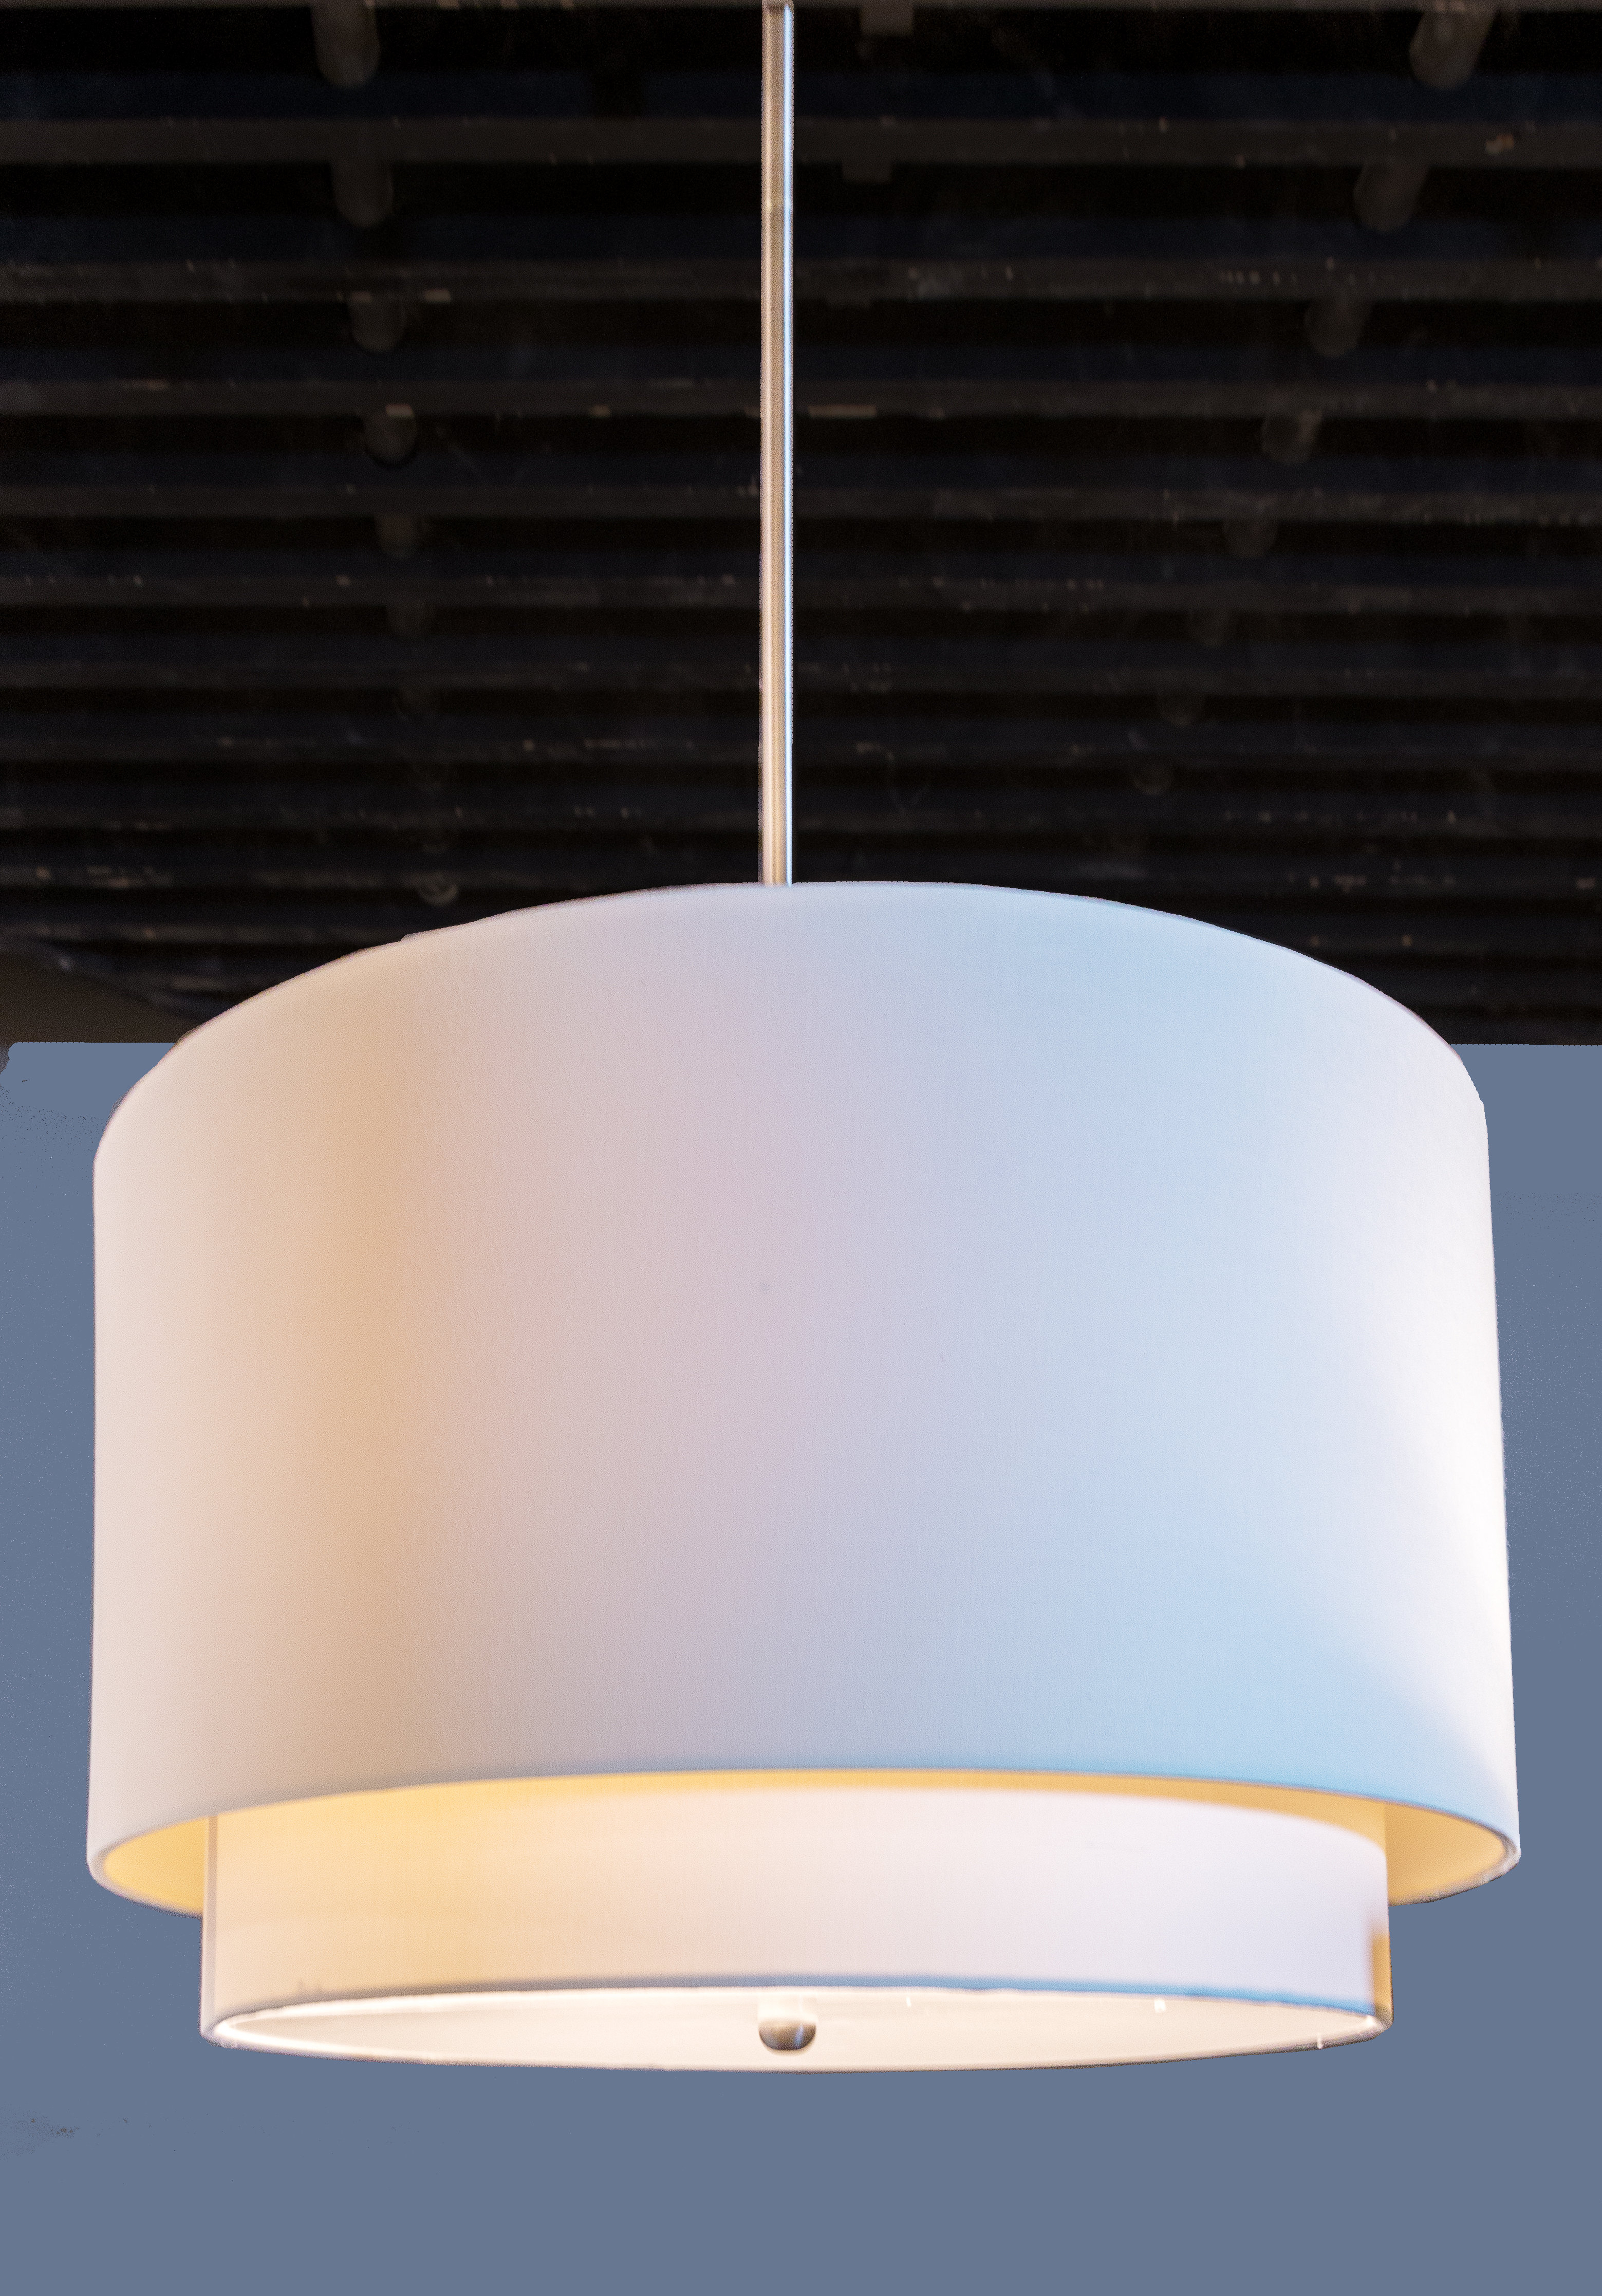 Friedland 3 Light Drum Tiered Pendant With Friedland 3 Light Drum Tiered Pendants (View 3 of 30)